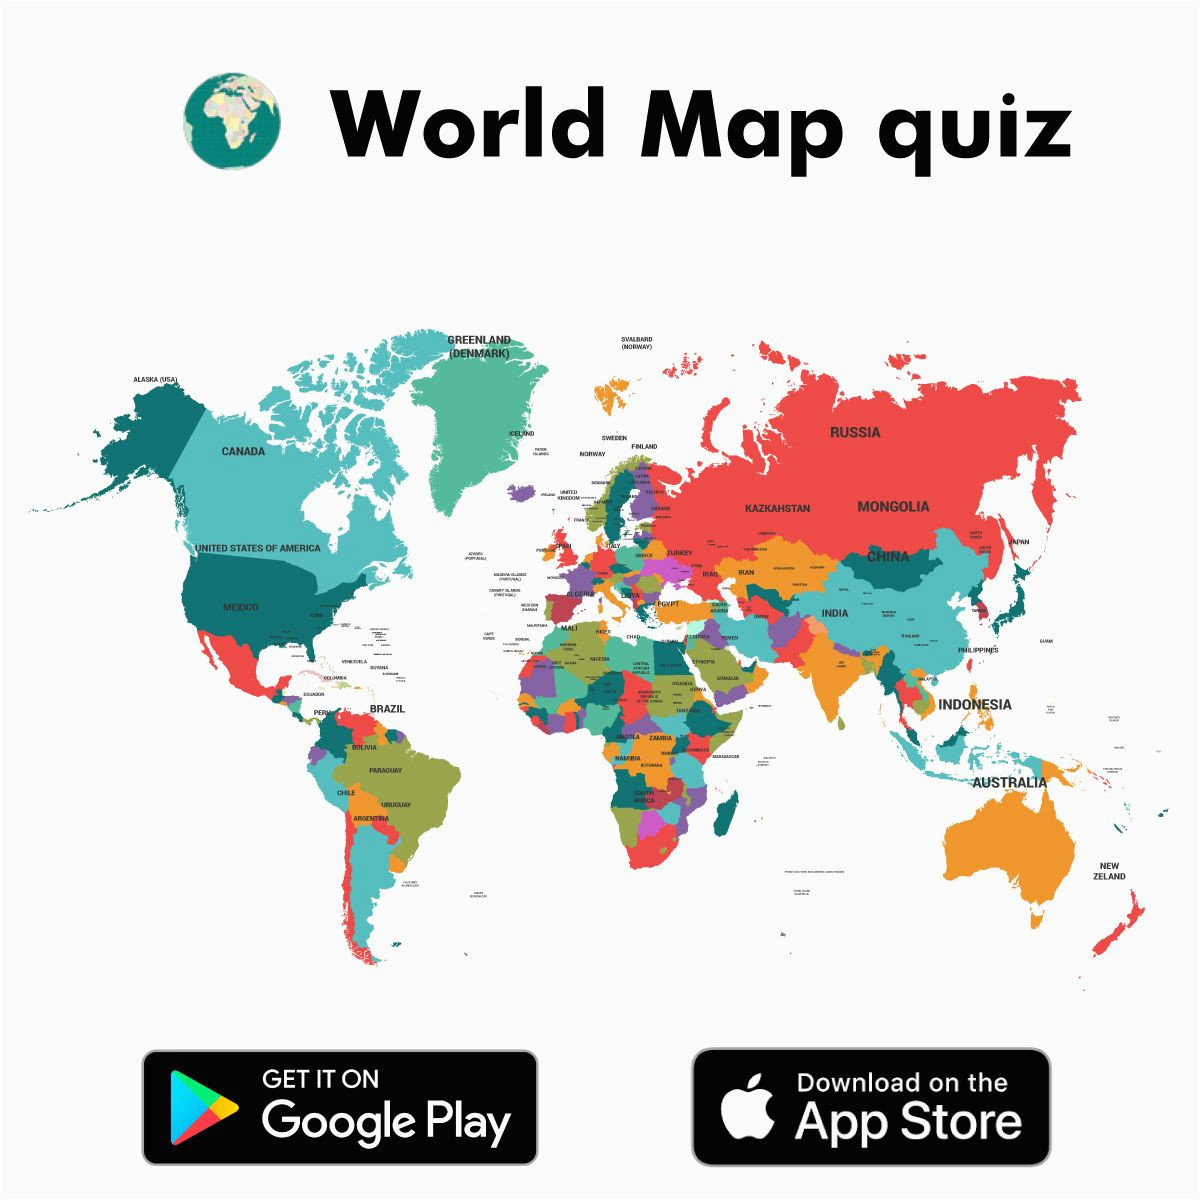 Europe Map Quiz Games World Map Quiz App is An Interesting App Developed for Kids